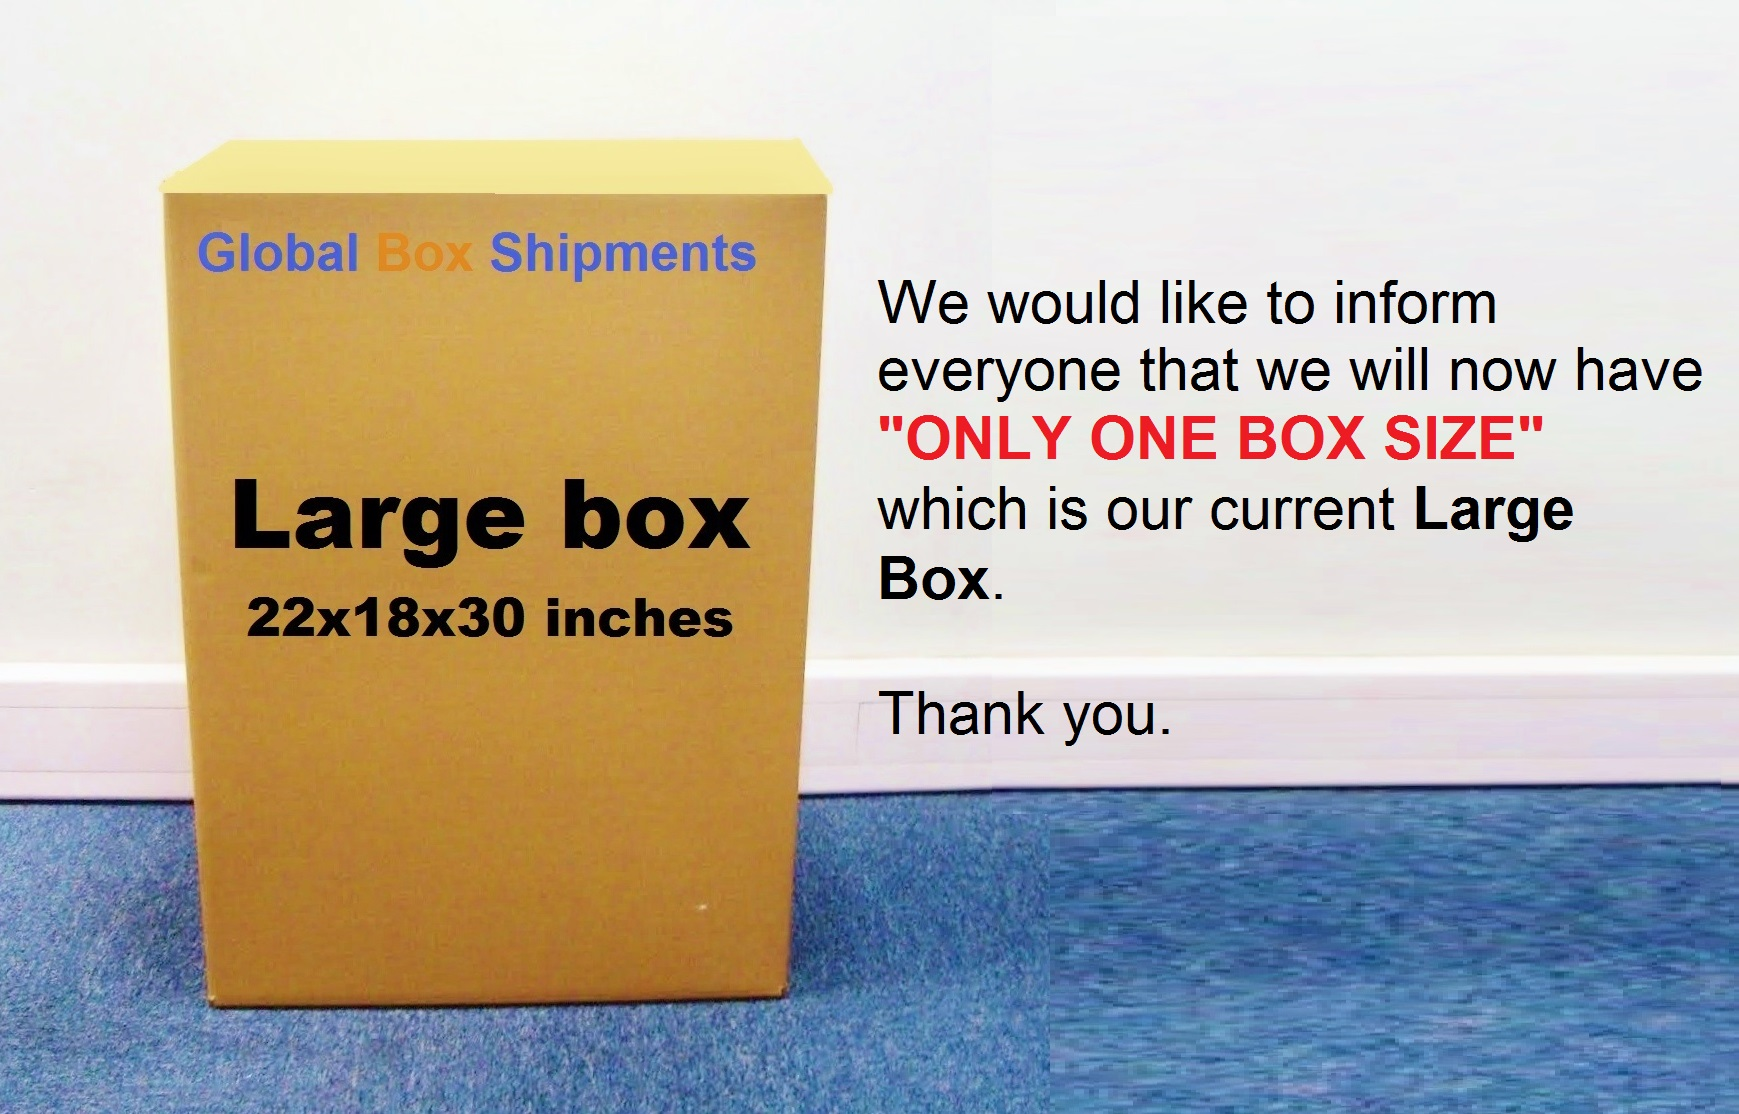 Balikbayan Boxes come in many sizes, and most companies use established common sizes for convenience. While technically you can use any box of any size, it is beneficial of you to use common balikbayan box sizes to take advantage of carrier pricing.